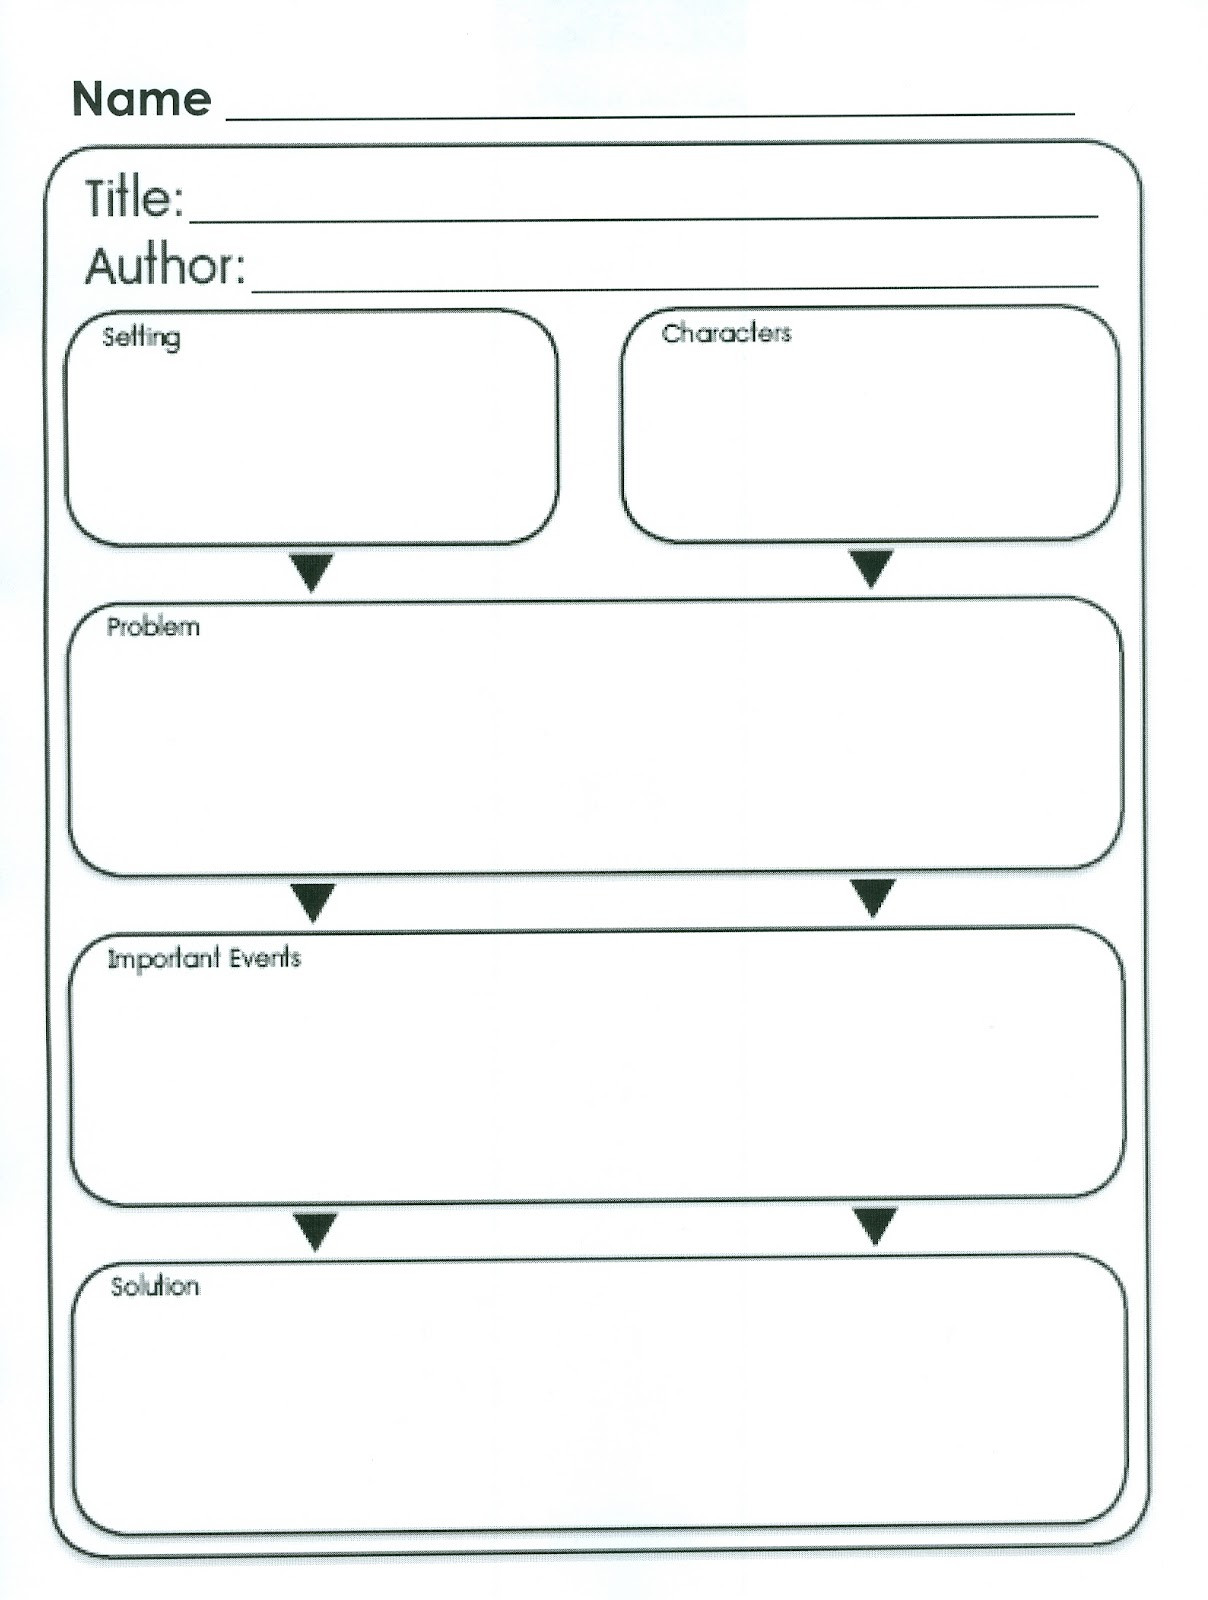 Printable Story Map 3rd Grade Inspirational Story Map Template